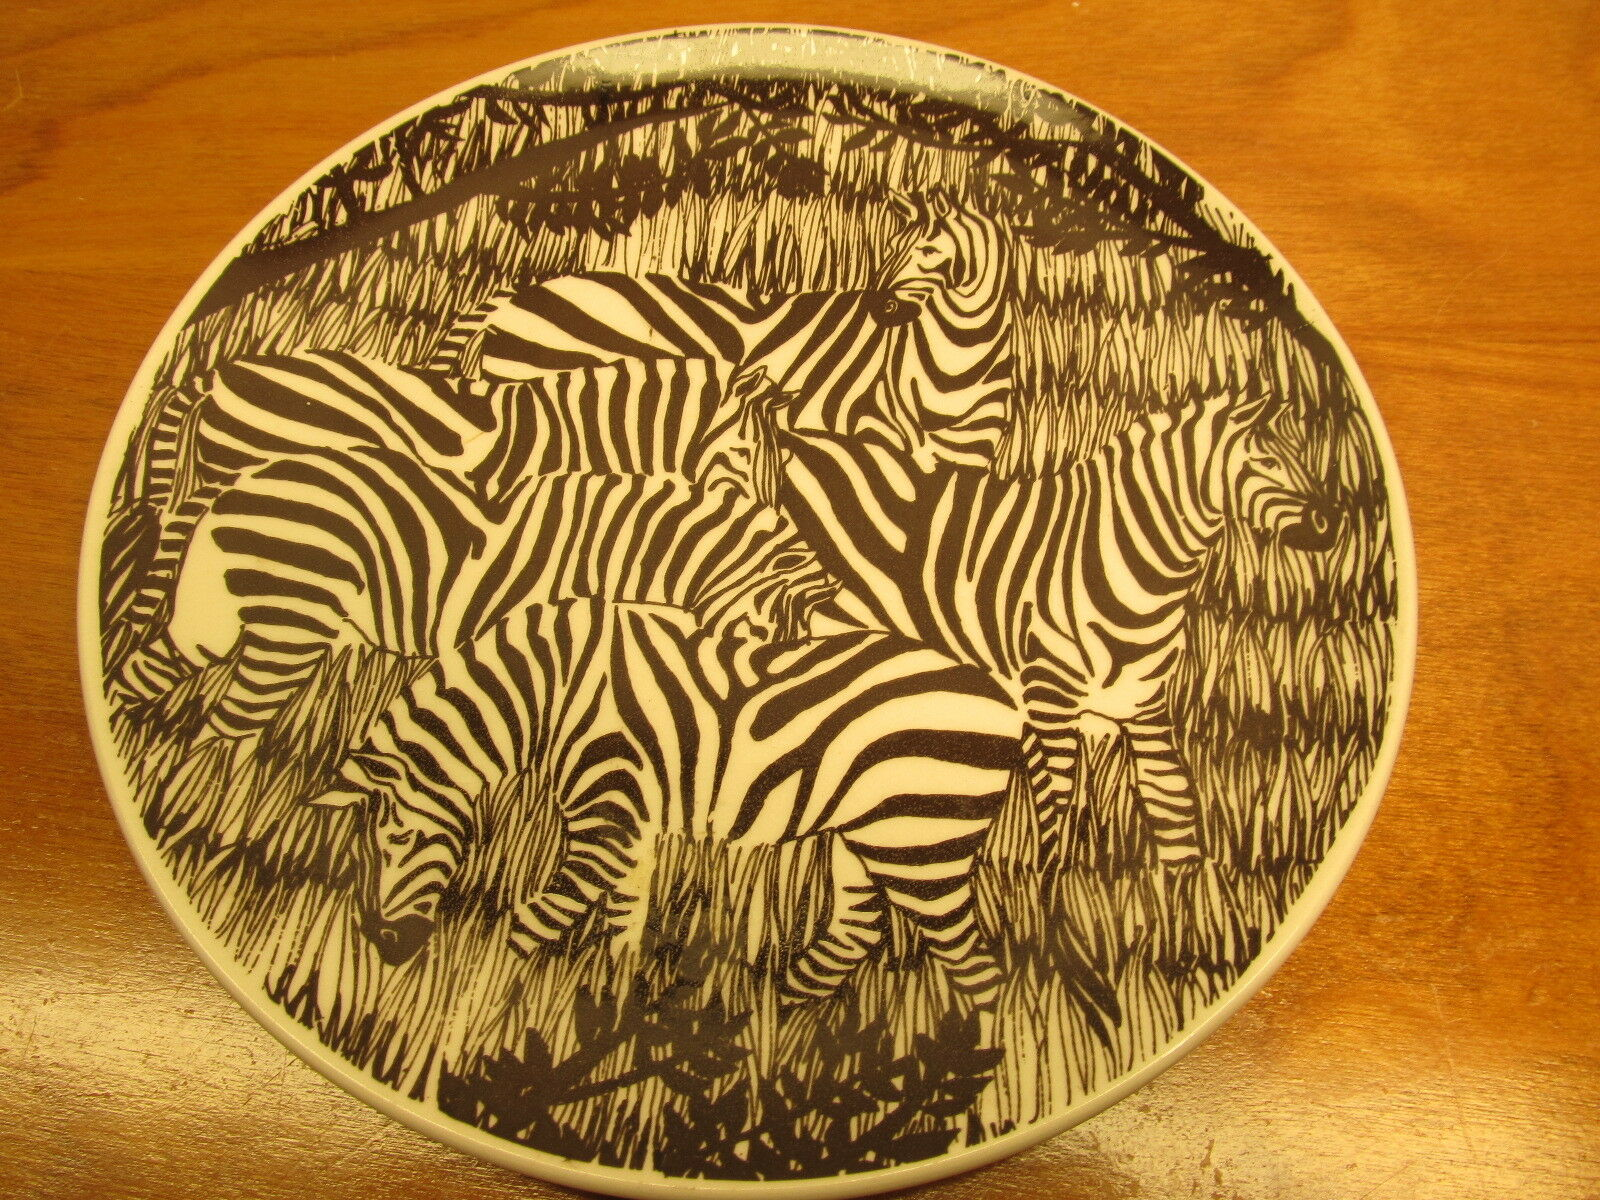 DECORATIVE ZEBRA PLATE made in Japan by vandor imports of San ...